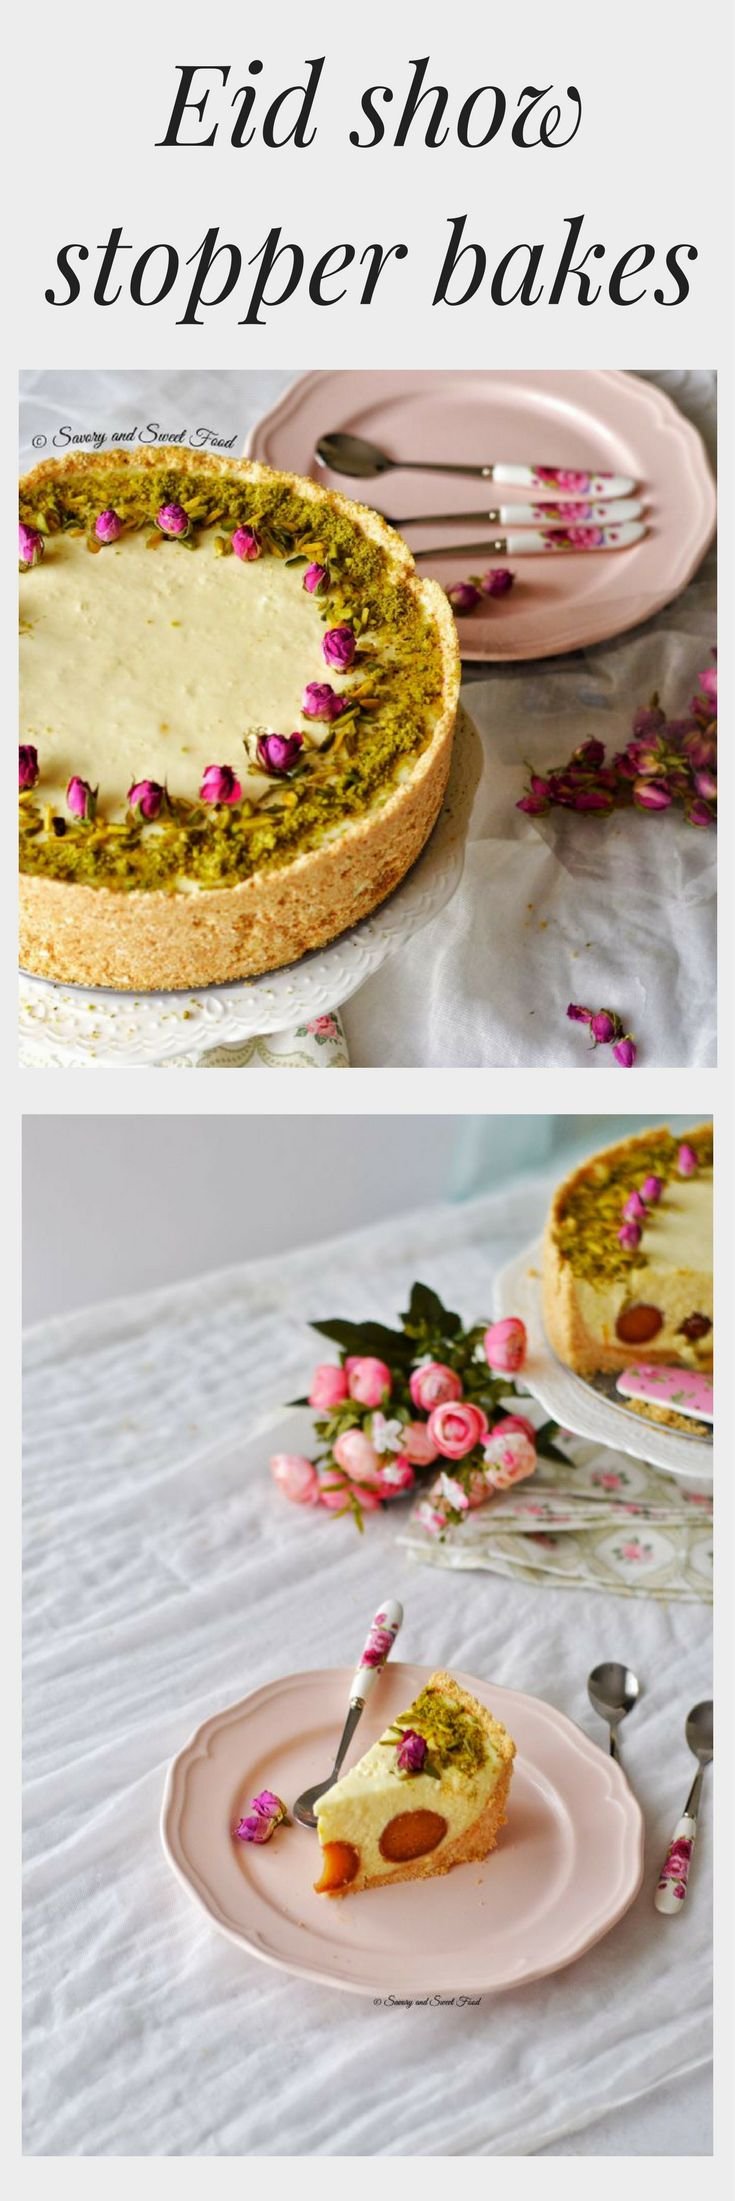 If a cheesecake wasn't enough to indulge in during your Eid celebrations we have found an amazing Ghulab Jamun filled Cheesecake. Decorate the cake with roses or crushed pistachios.